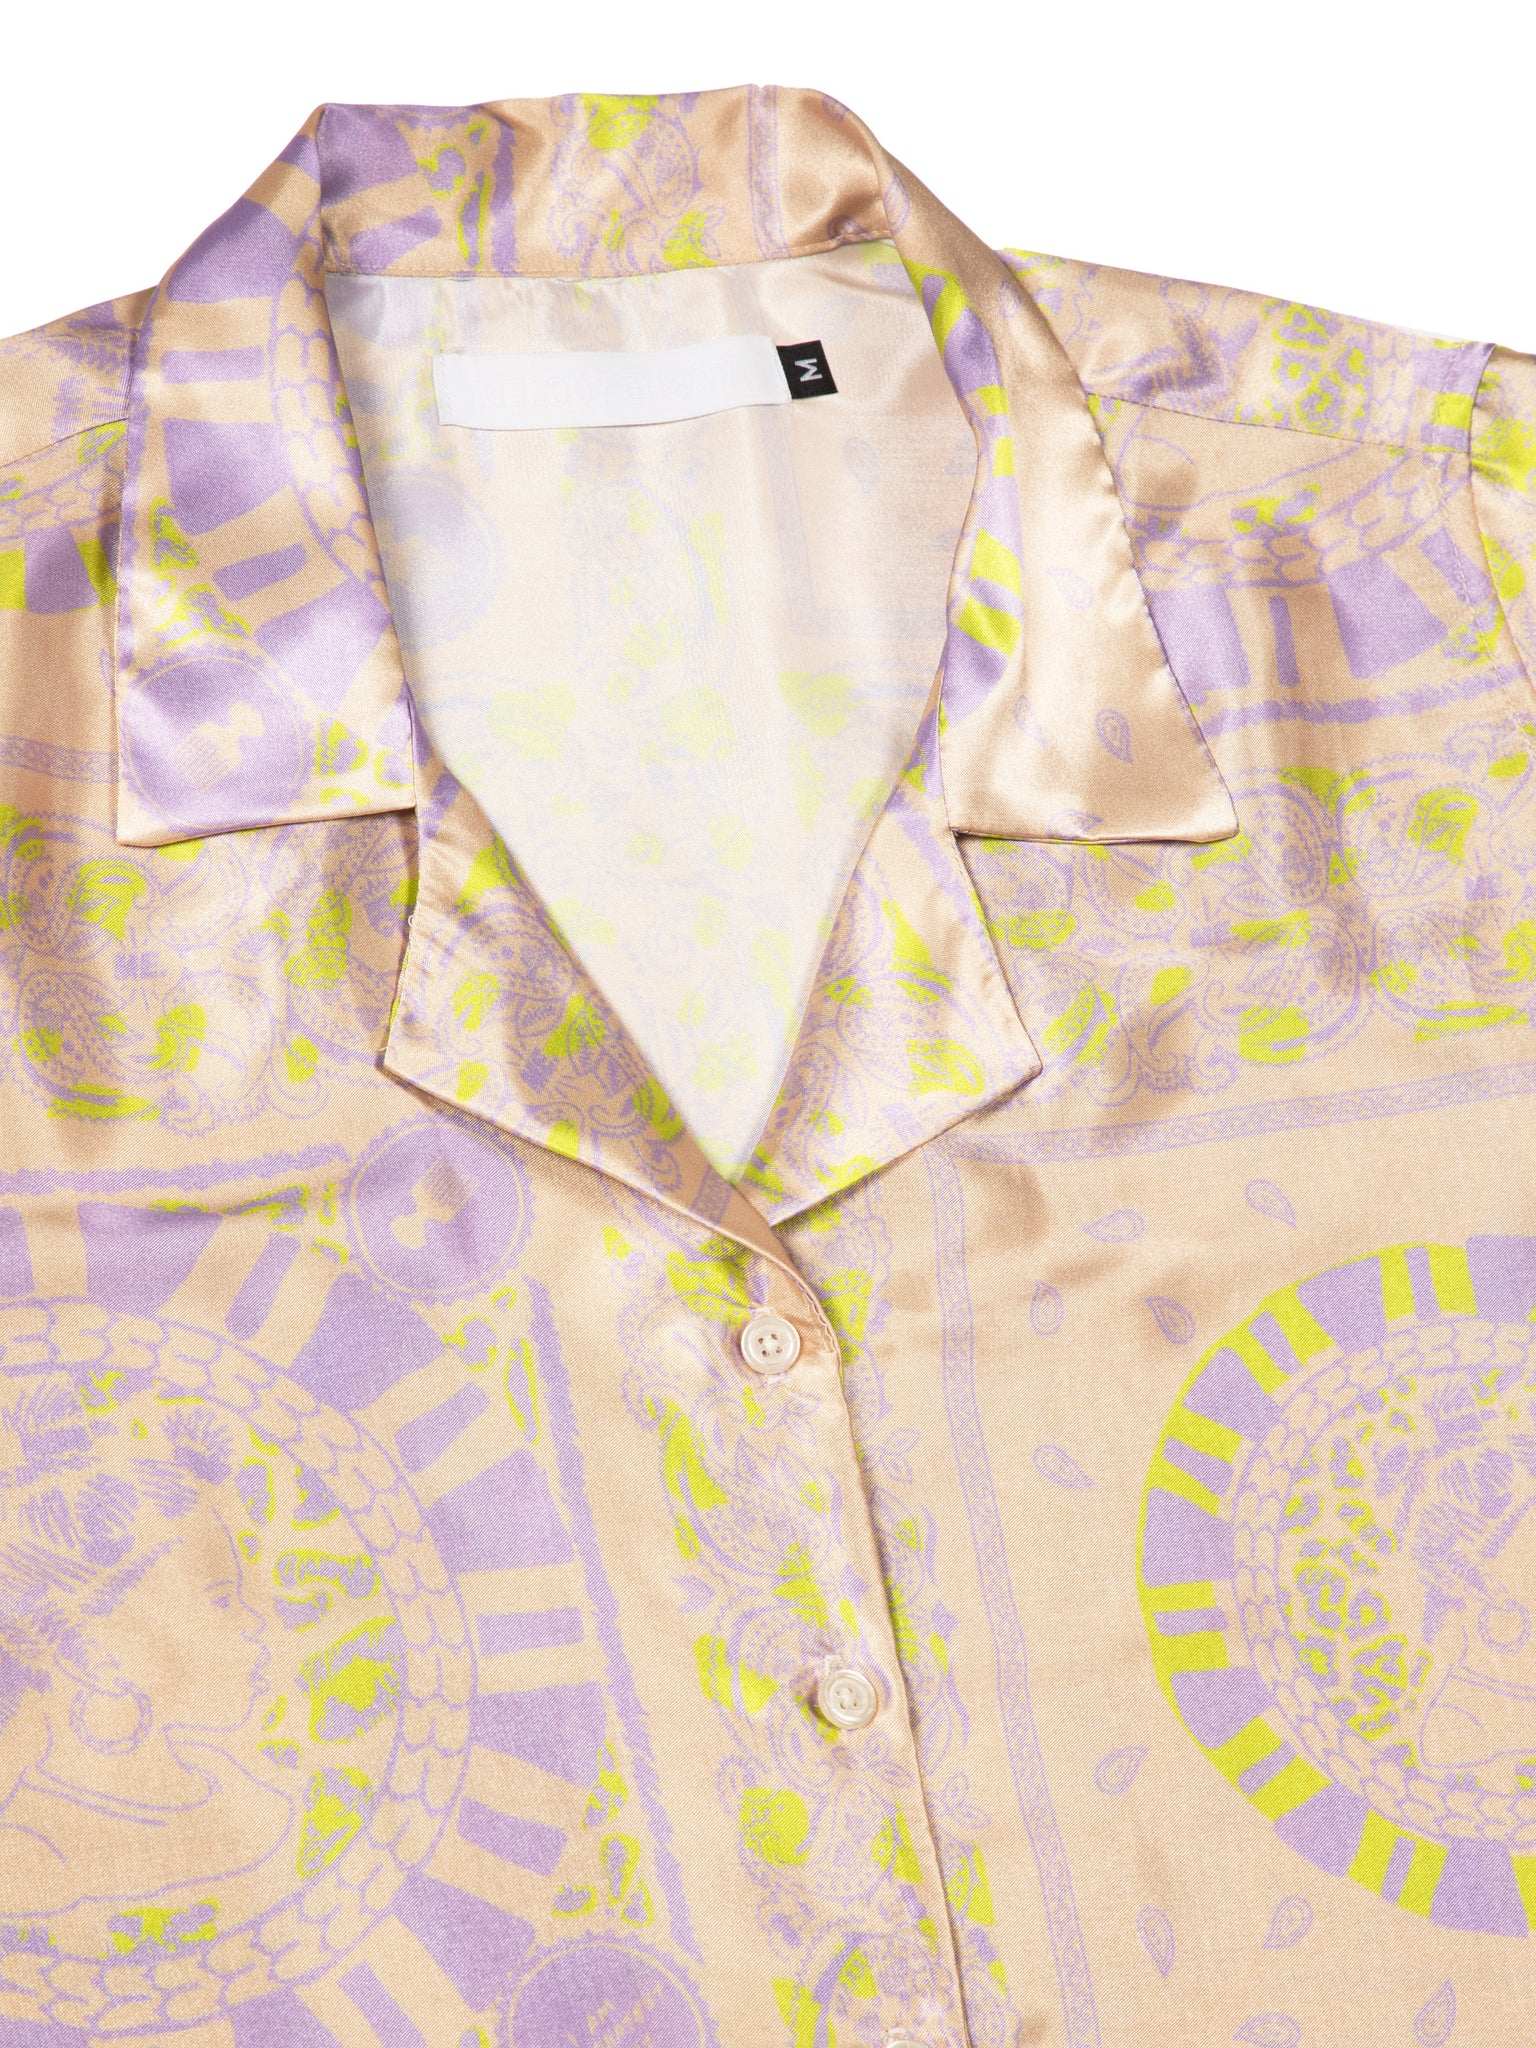 BBS x Melody Ehsani Leisure Button Up